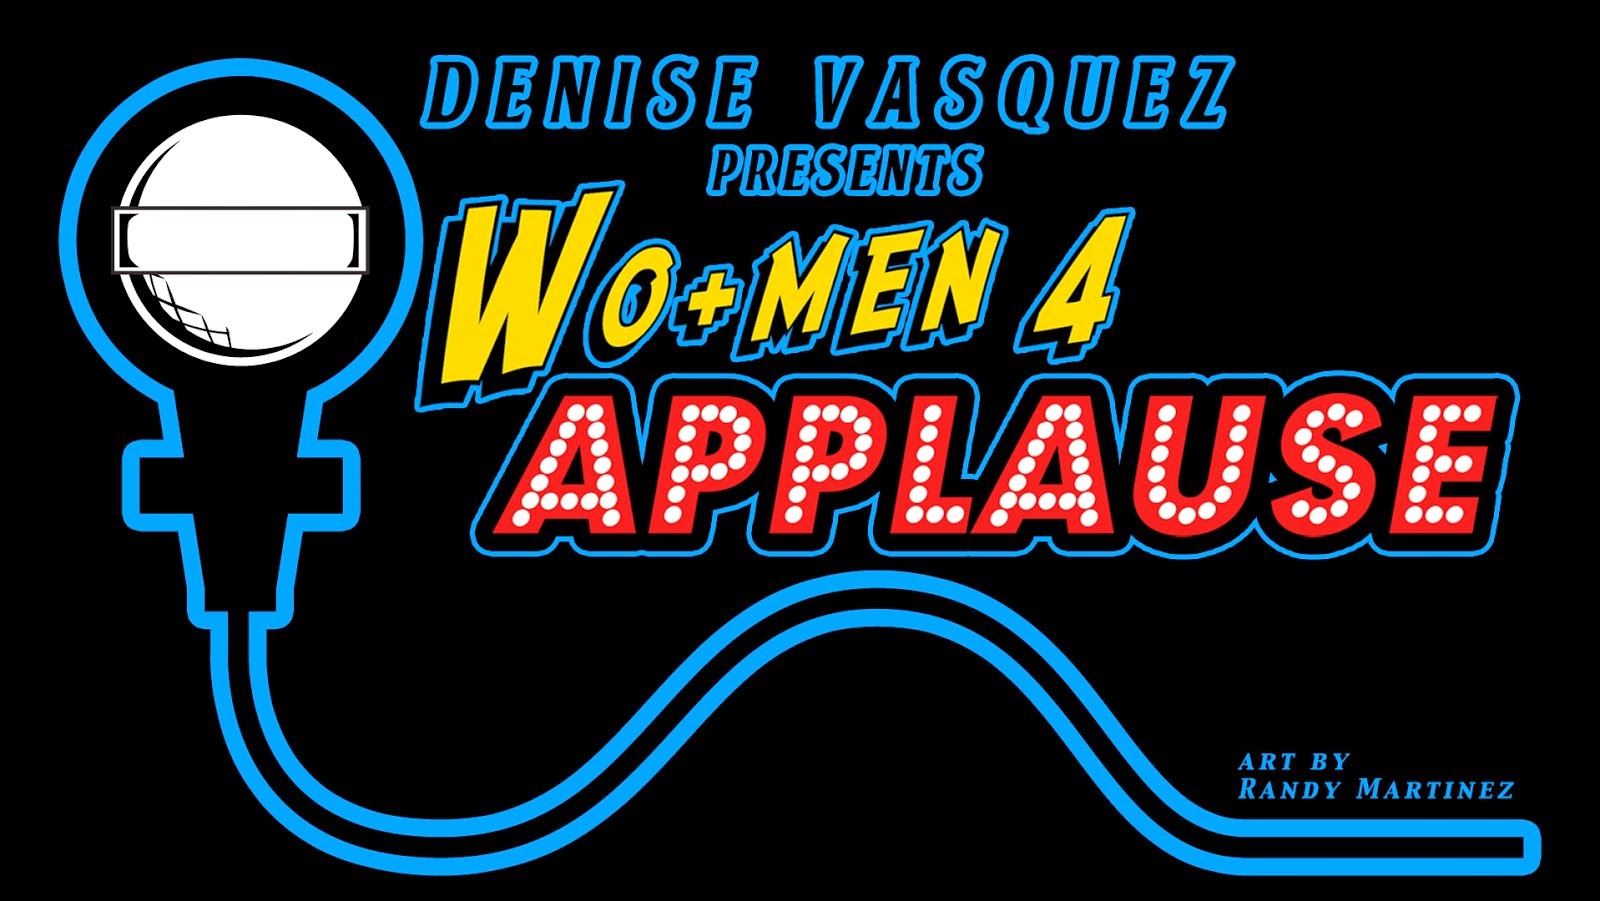 Denise Vasquez Presents WO+MEN 4 APPLAUSE™